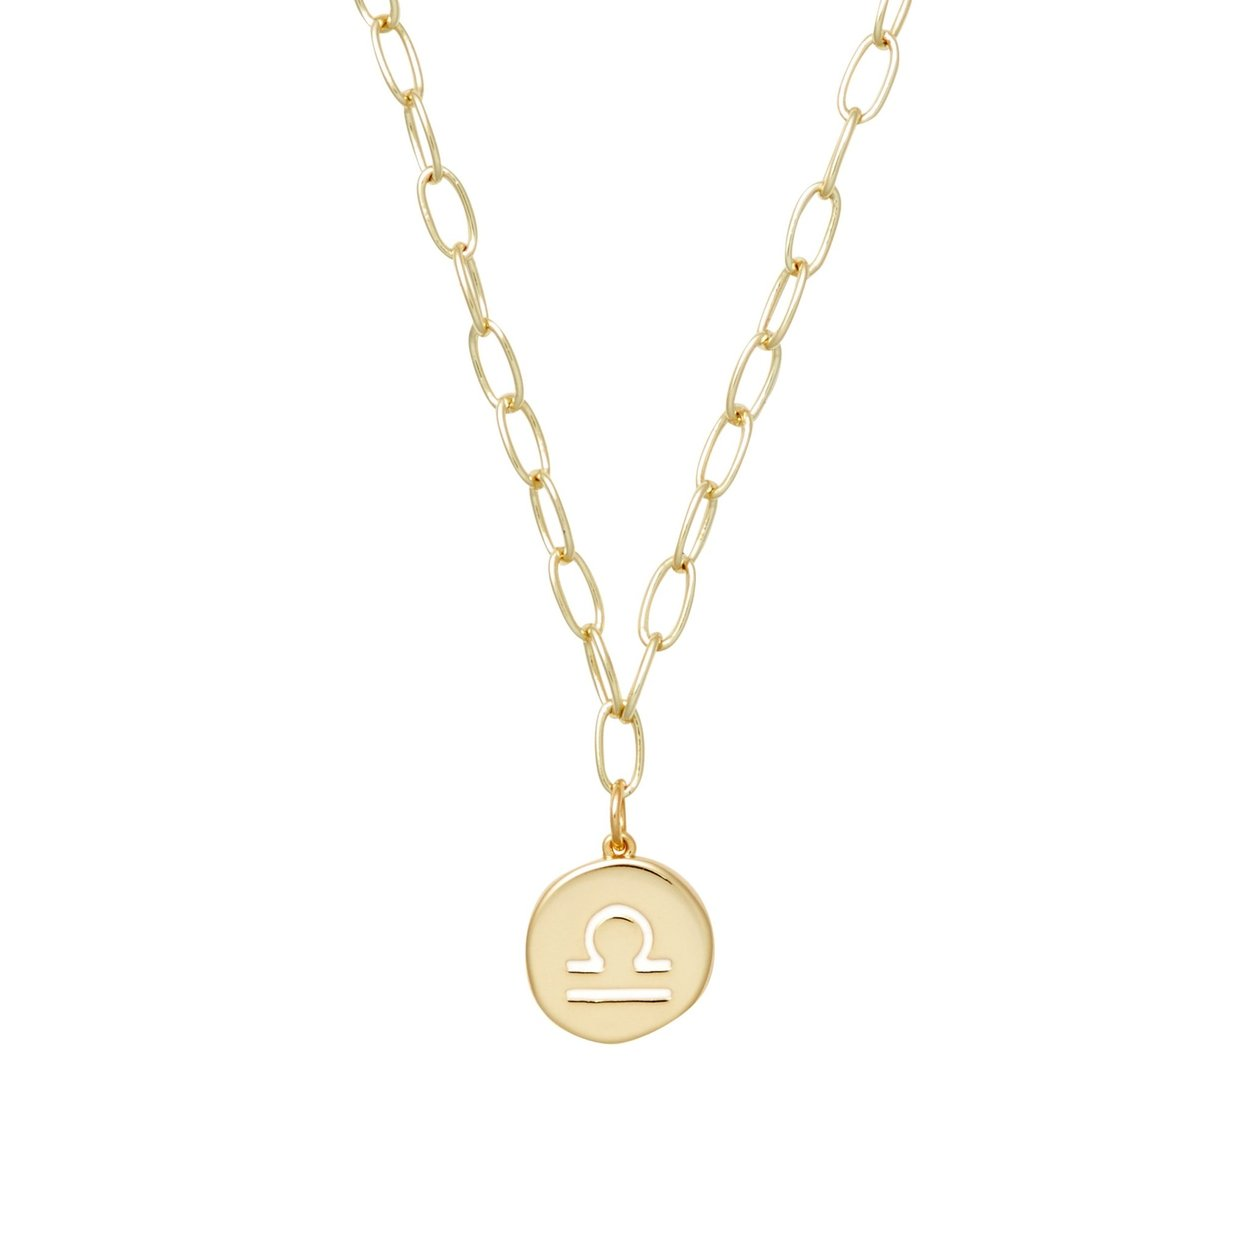 Machete - Horoscope Charm Necklace (Libra)